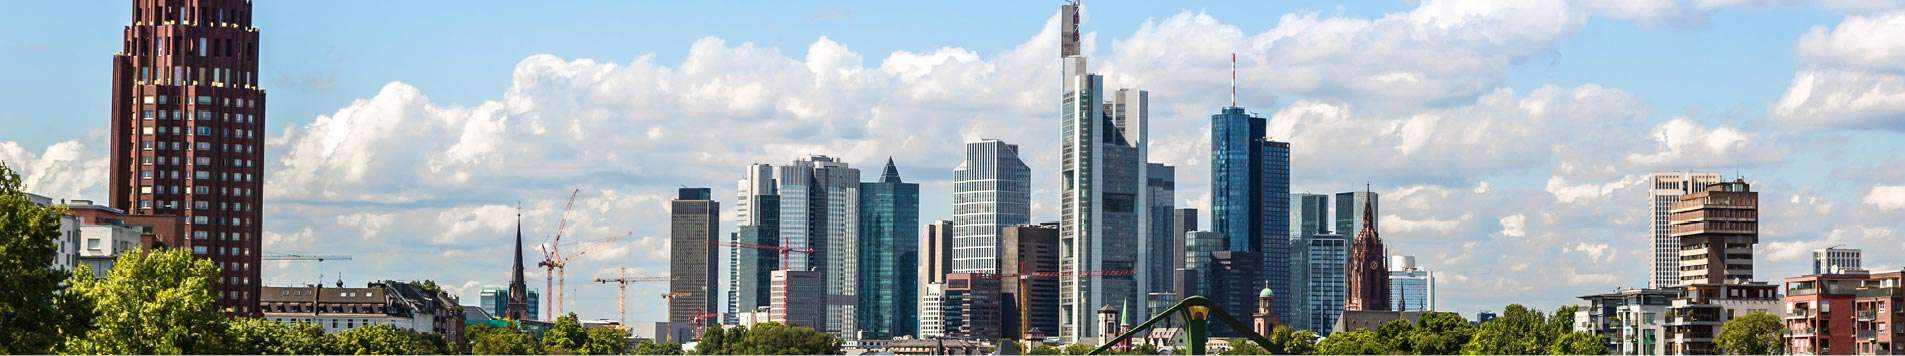 Peergroup Analyse Frankfurt am Main